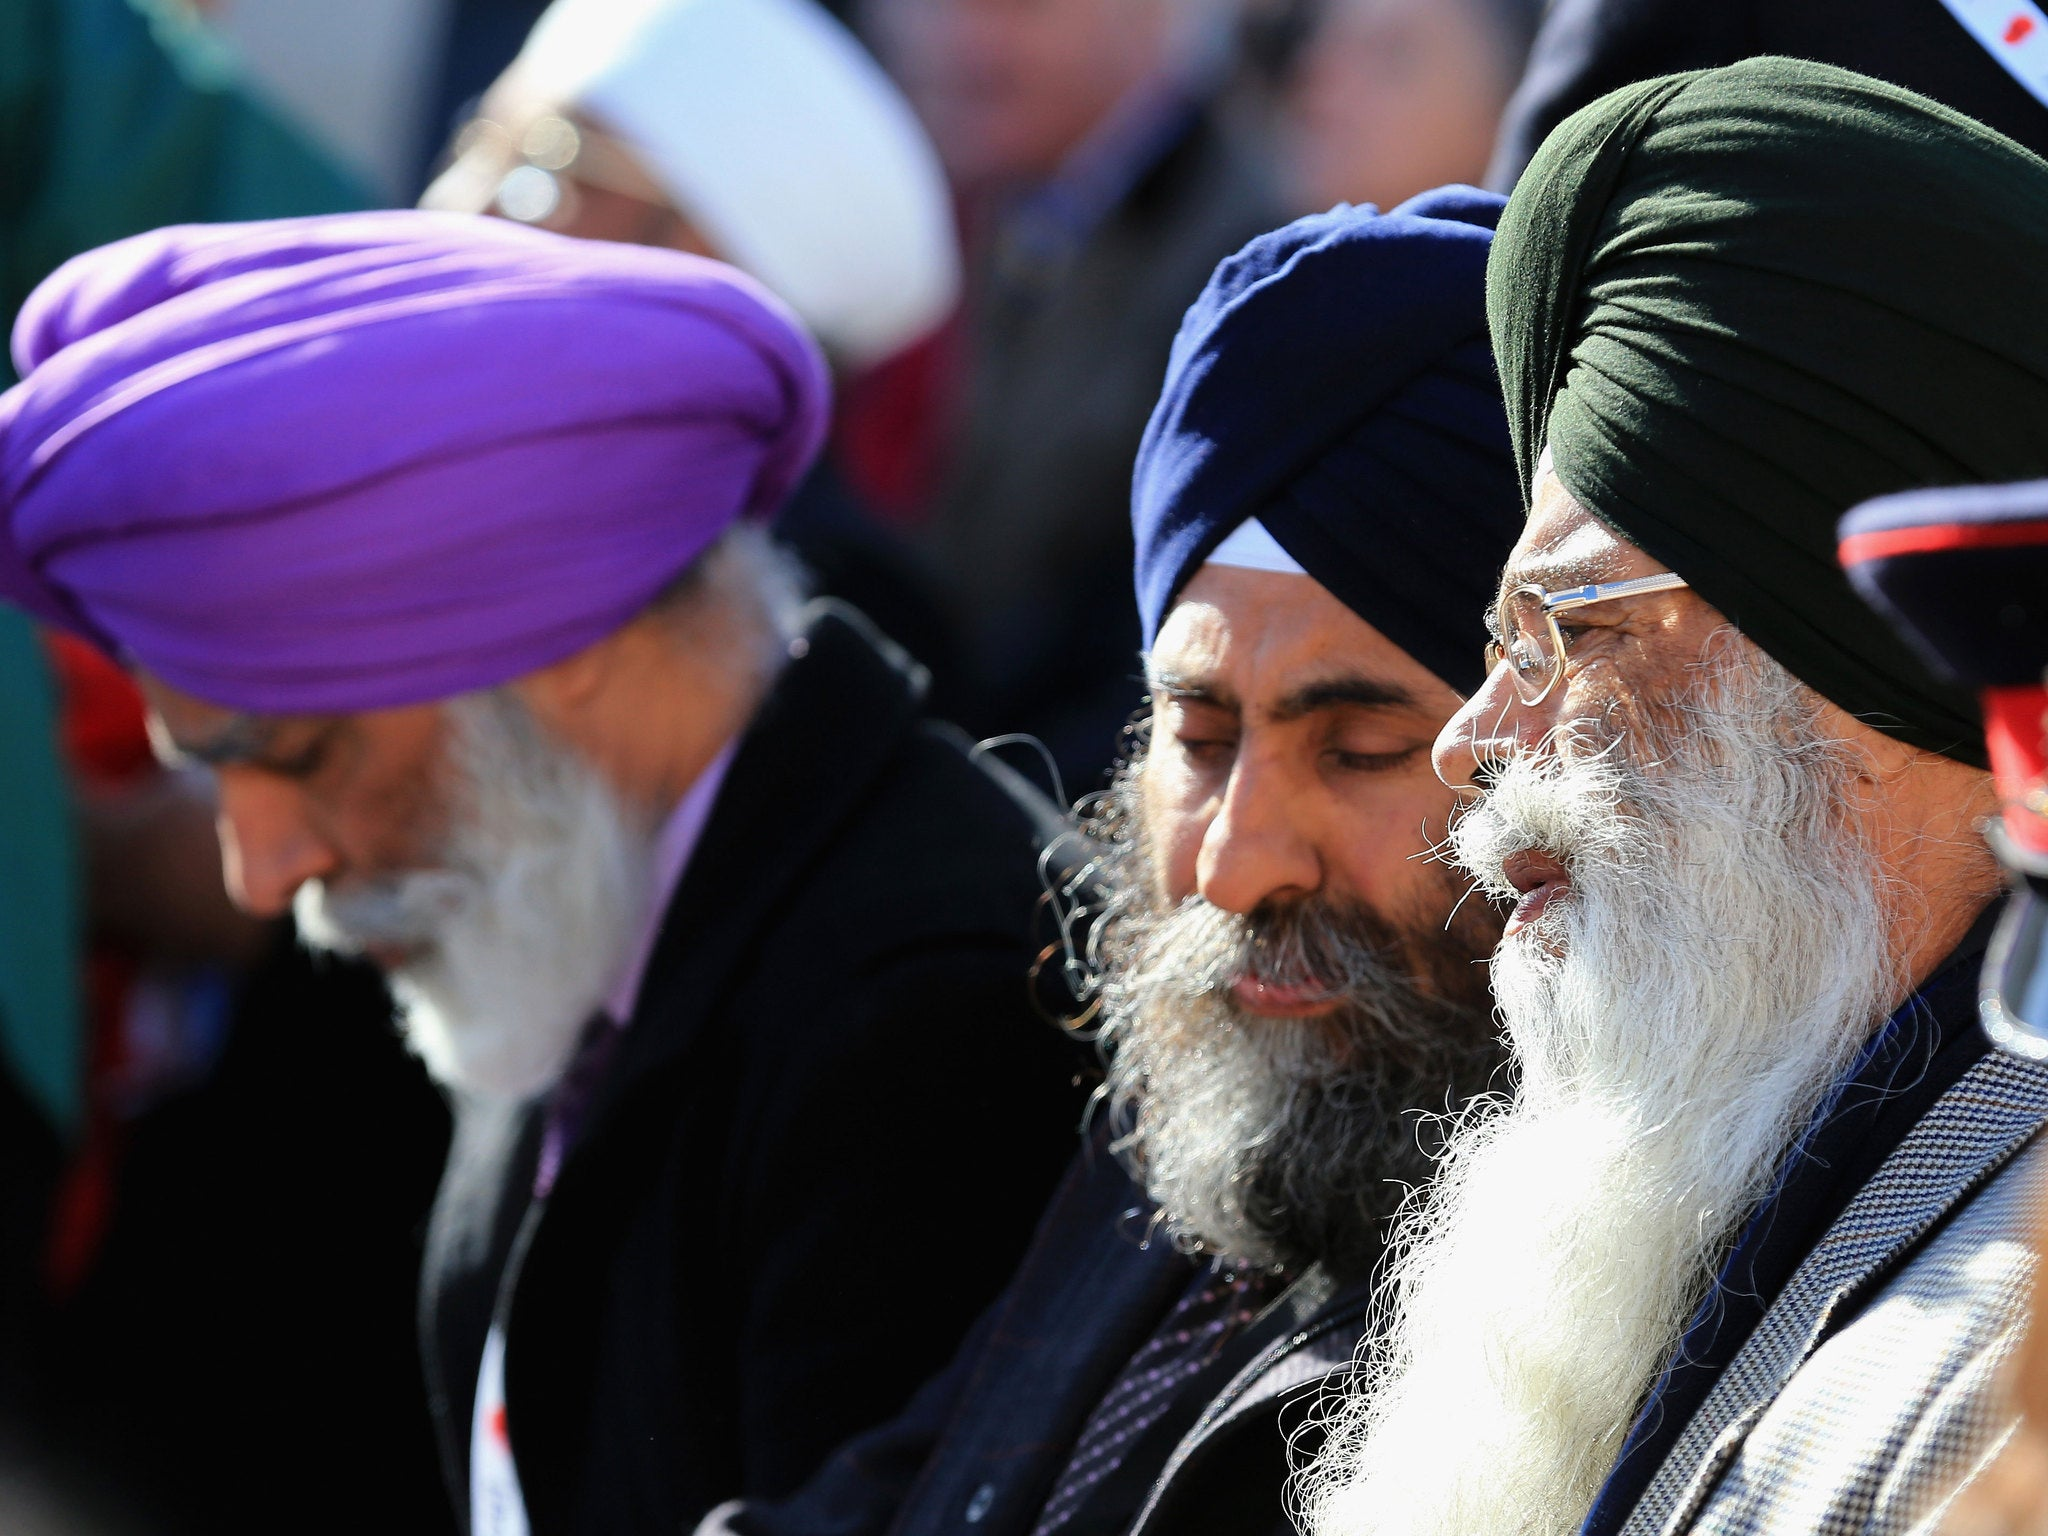 Sikhs in America are still coming under attack because people think